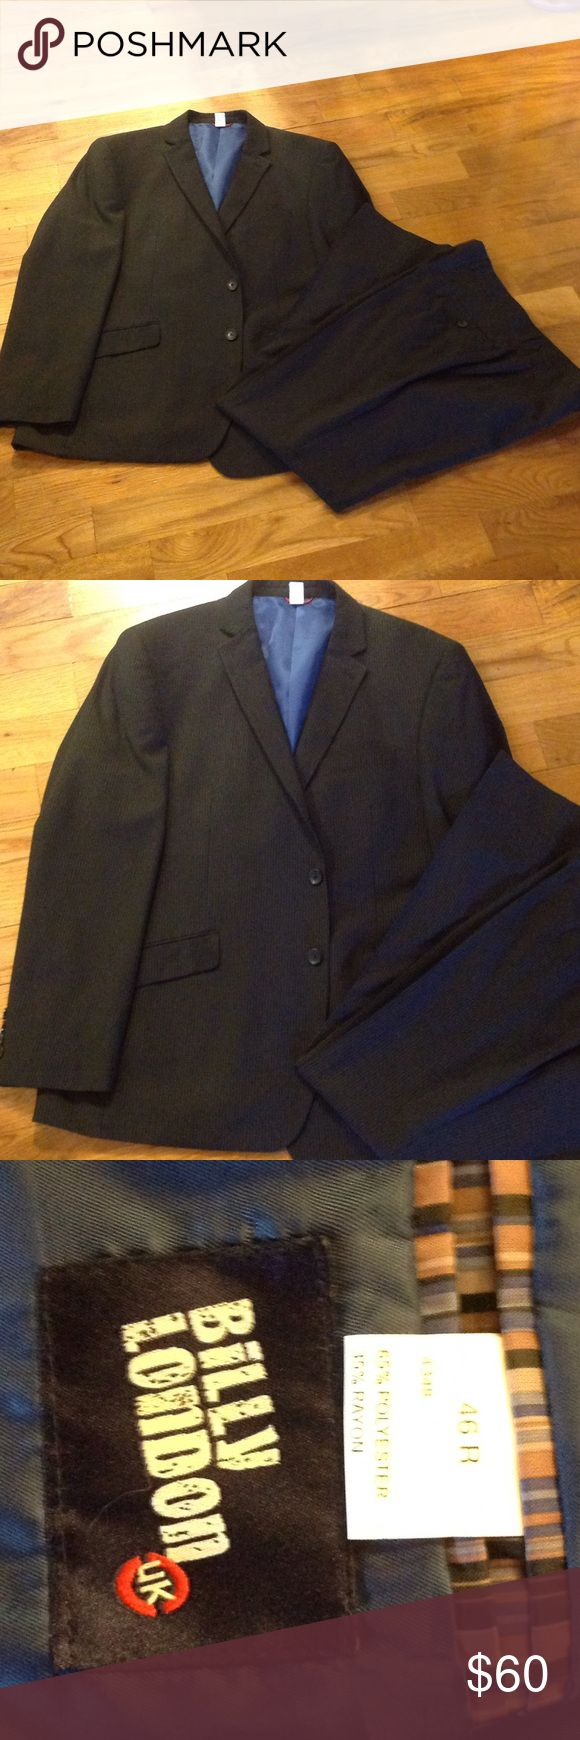 🎩Beautiful Black Pinstriped Suit🎩 This is a beautiful like new freshly dry cleaned black Pinstriped suit by Billy London suit coat is 46R Pants 38x 32 and are in the new modern slim leg style.  Coat lined in gorgeous blue satin  🎩 Billy London Suits & Blazers Suits